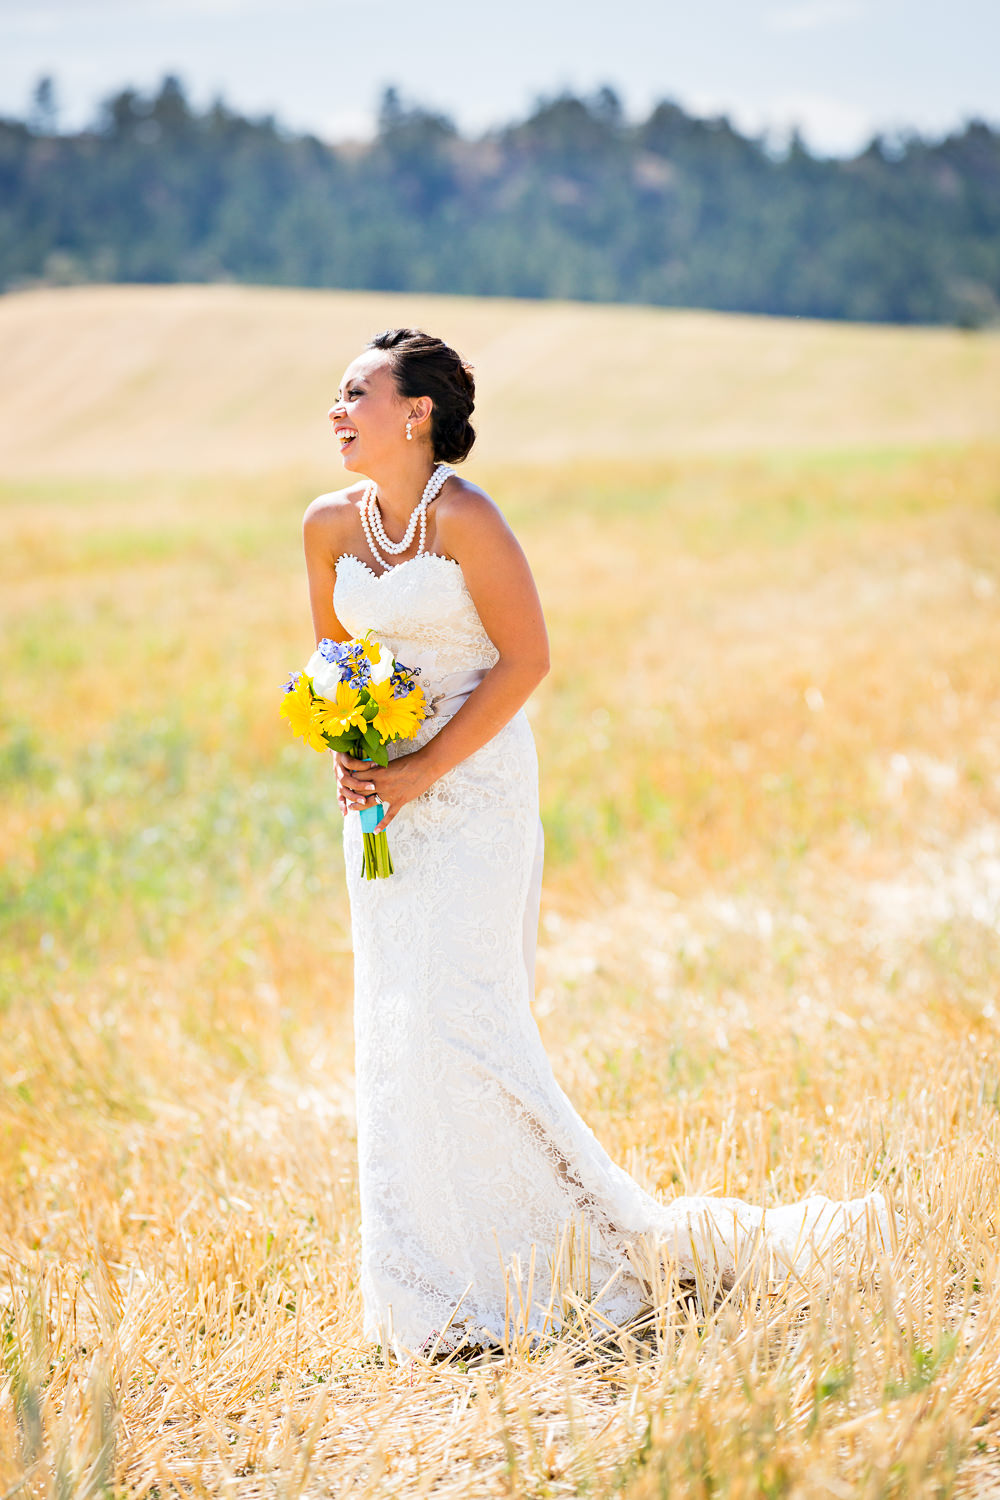 billings-montana-chanceys-wedding-first-look-bride-looks-at-groom.jpg